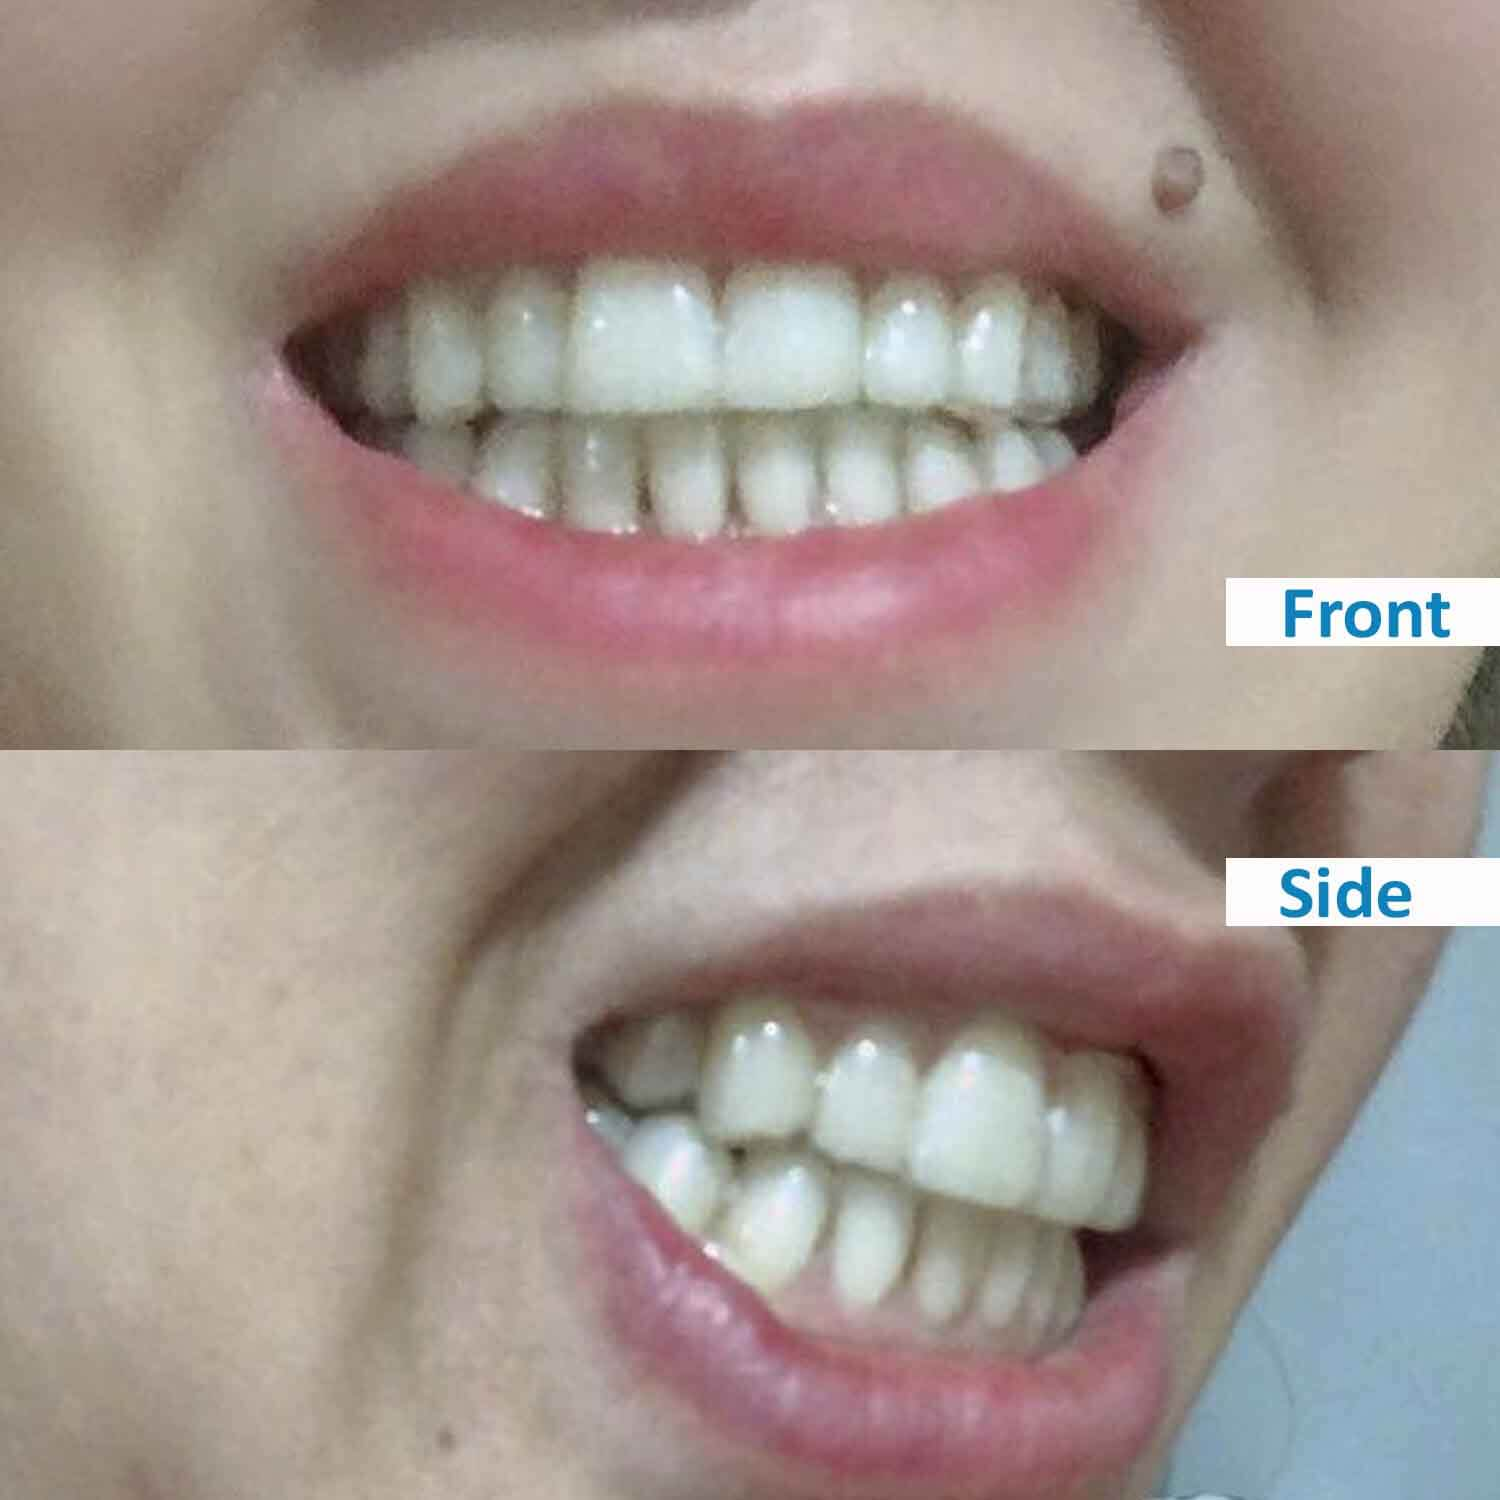 ensmile patient's before and after 2